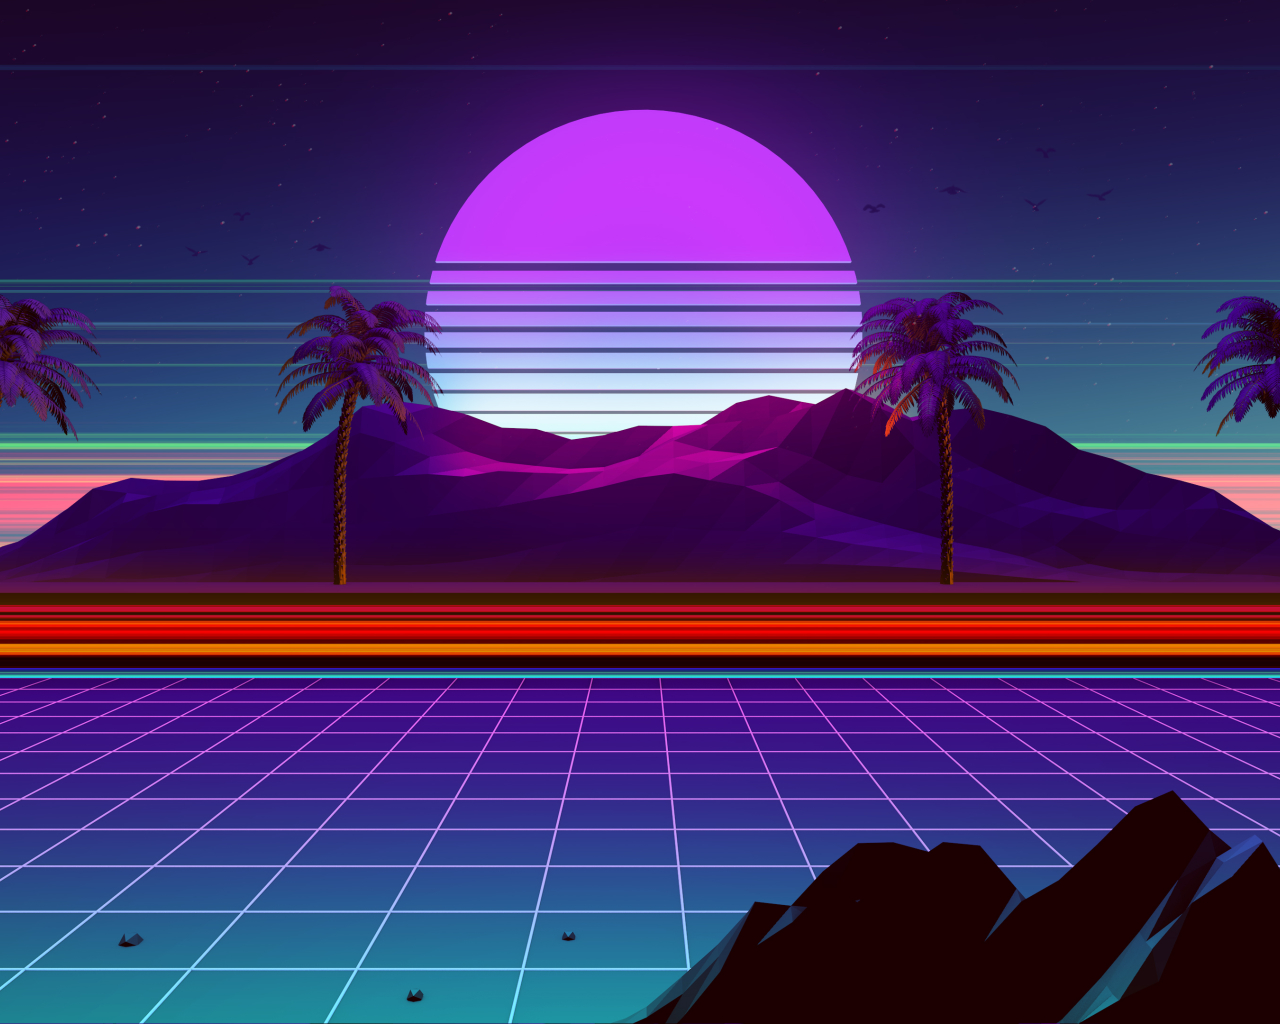 1280x1024 Synthwave And Retrowave 1280x1024 Resolution ...